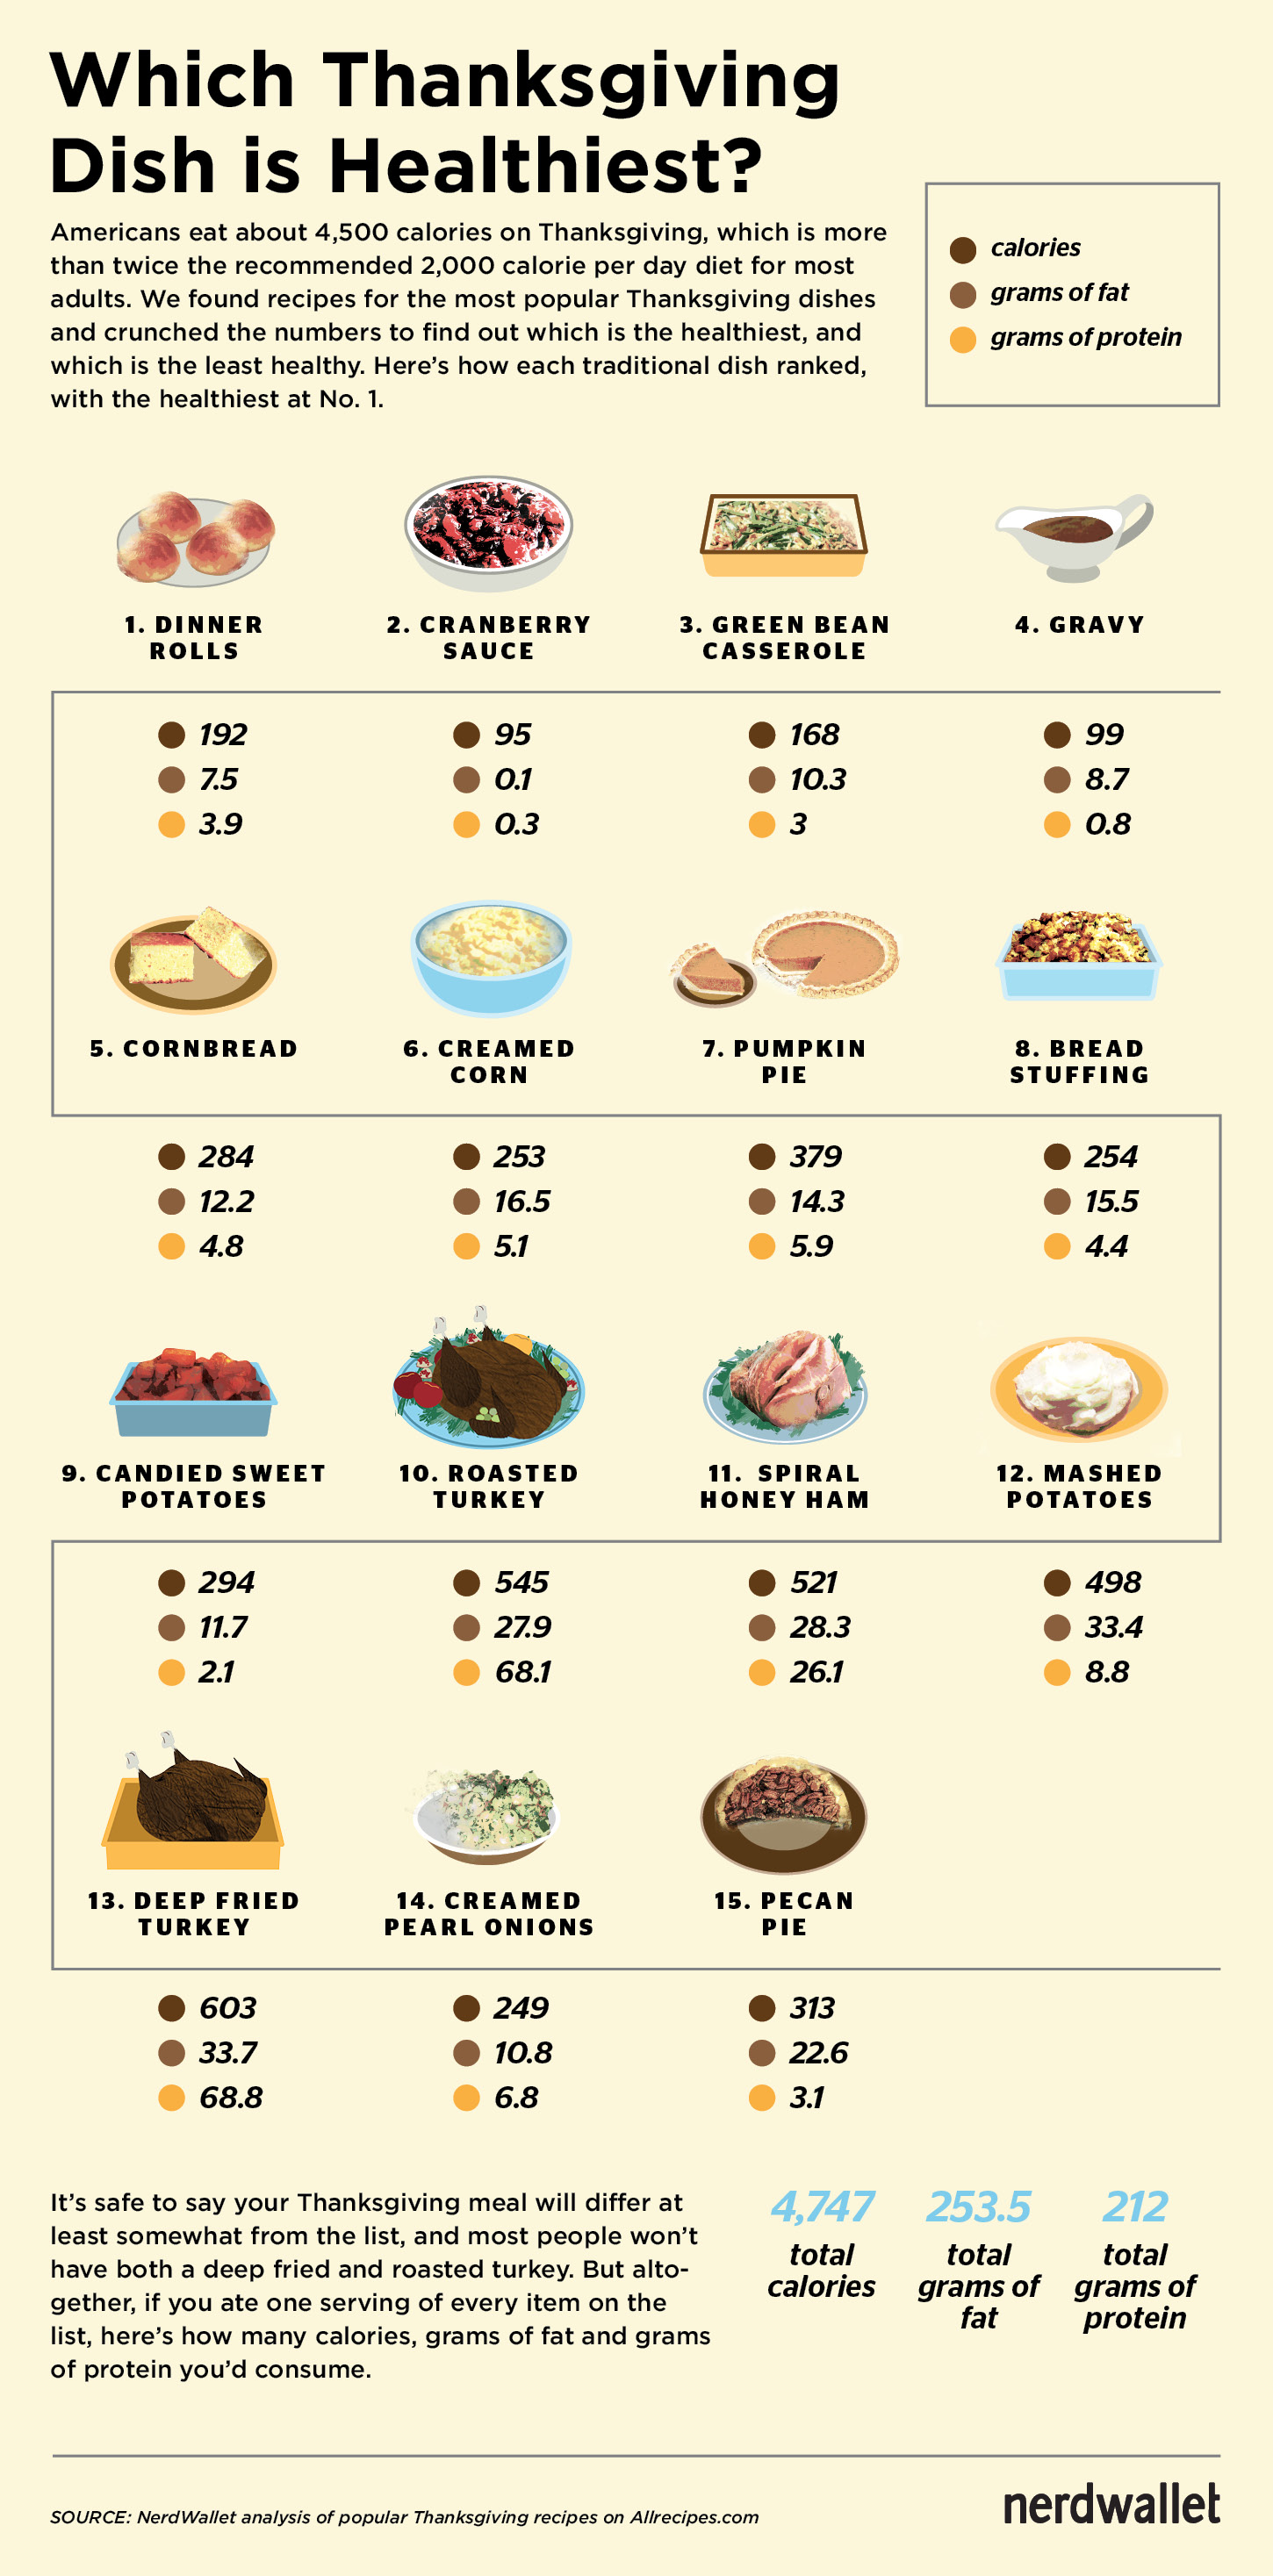 healthiest thanksgiving dishes chart